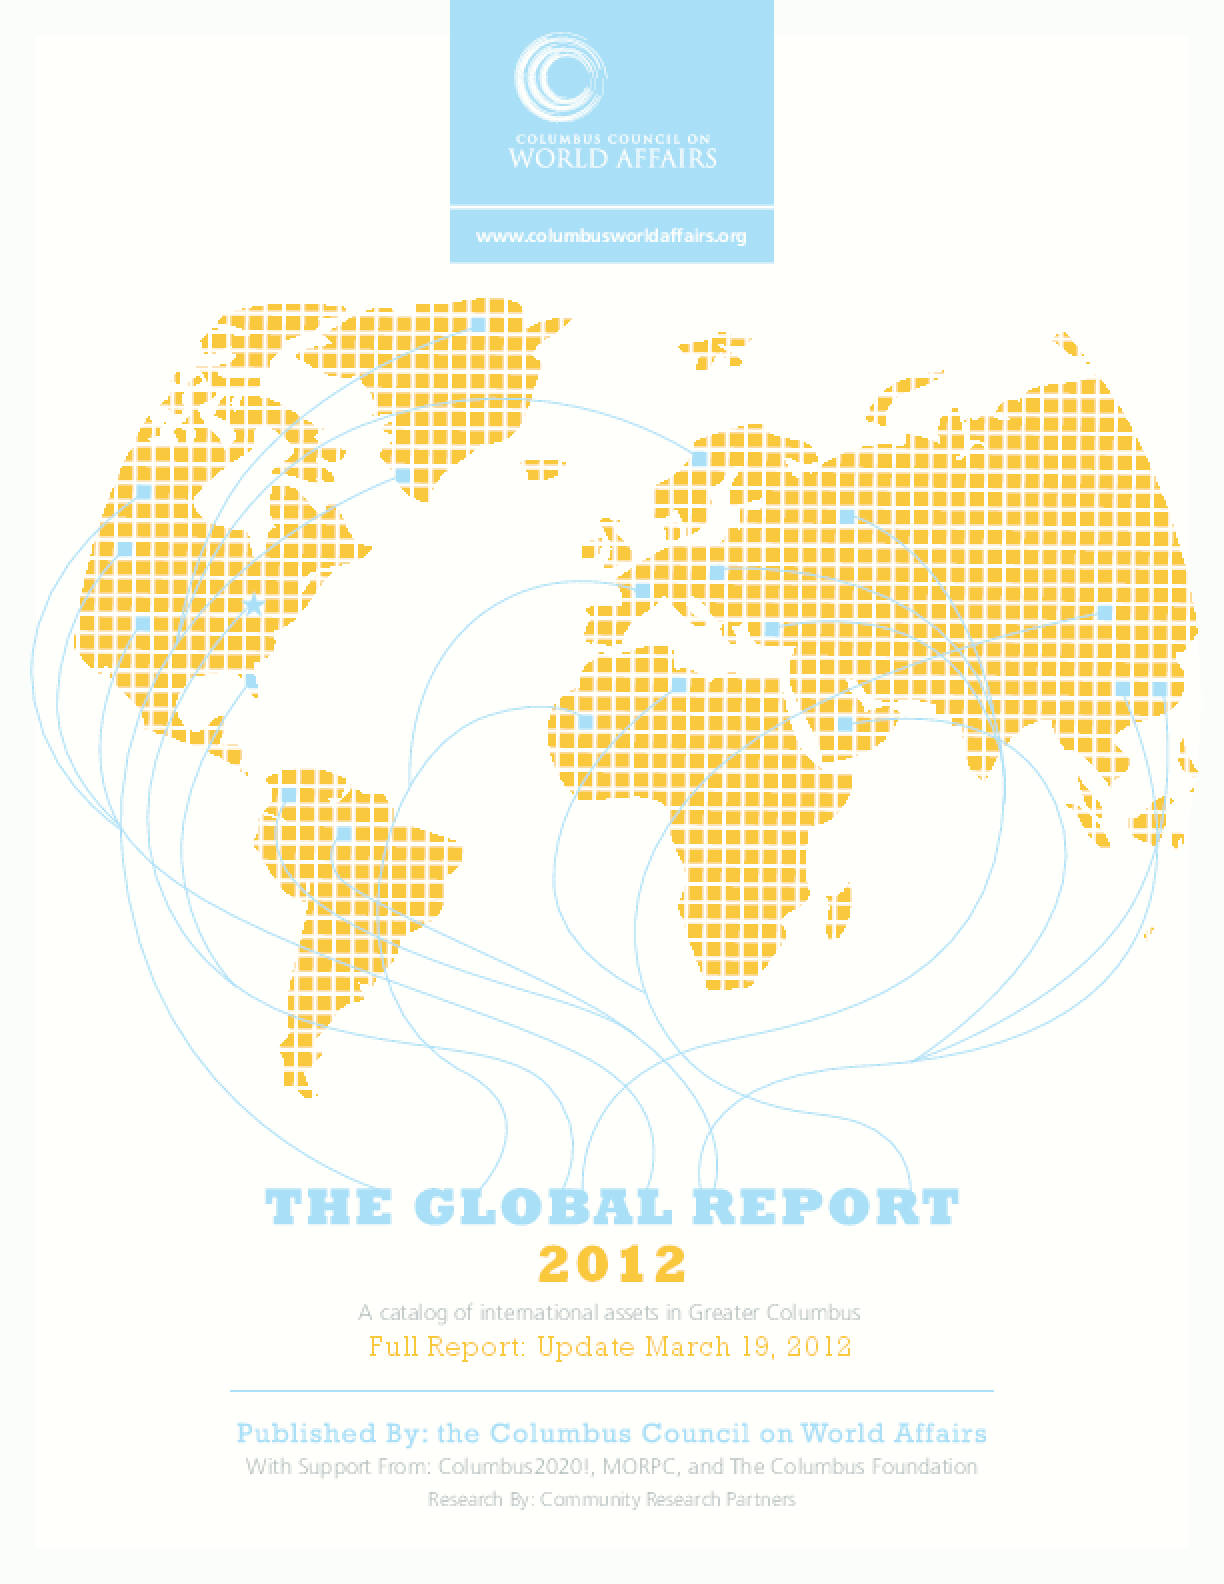 The Global Report 2012: A catalog of international assets in Greater Columbus